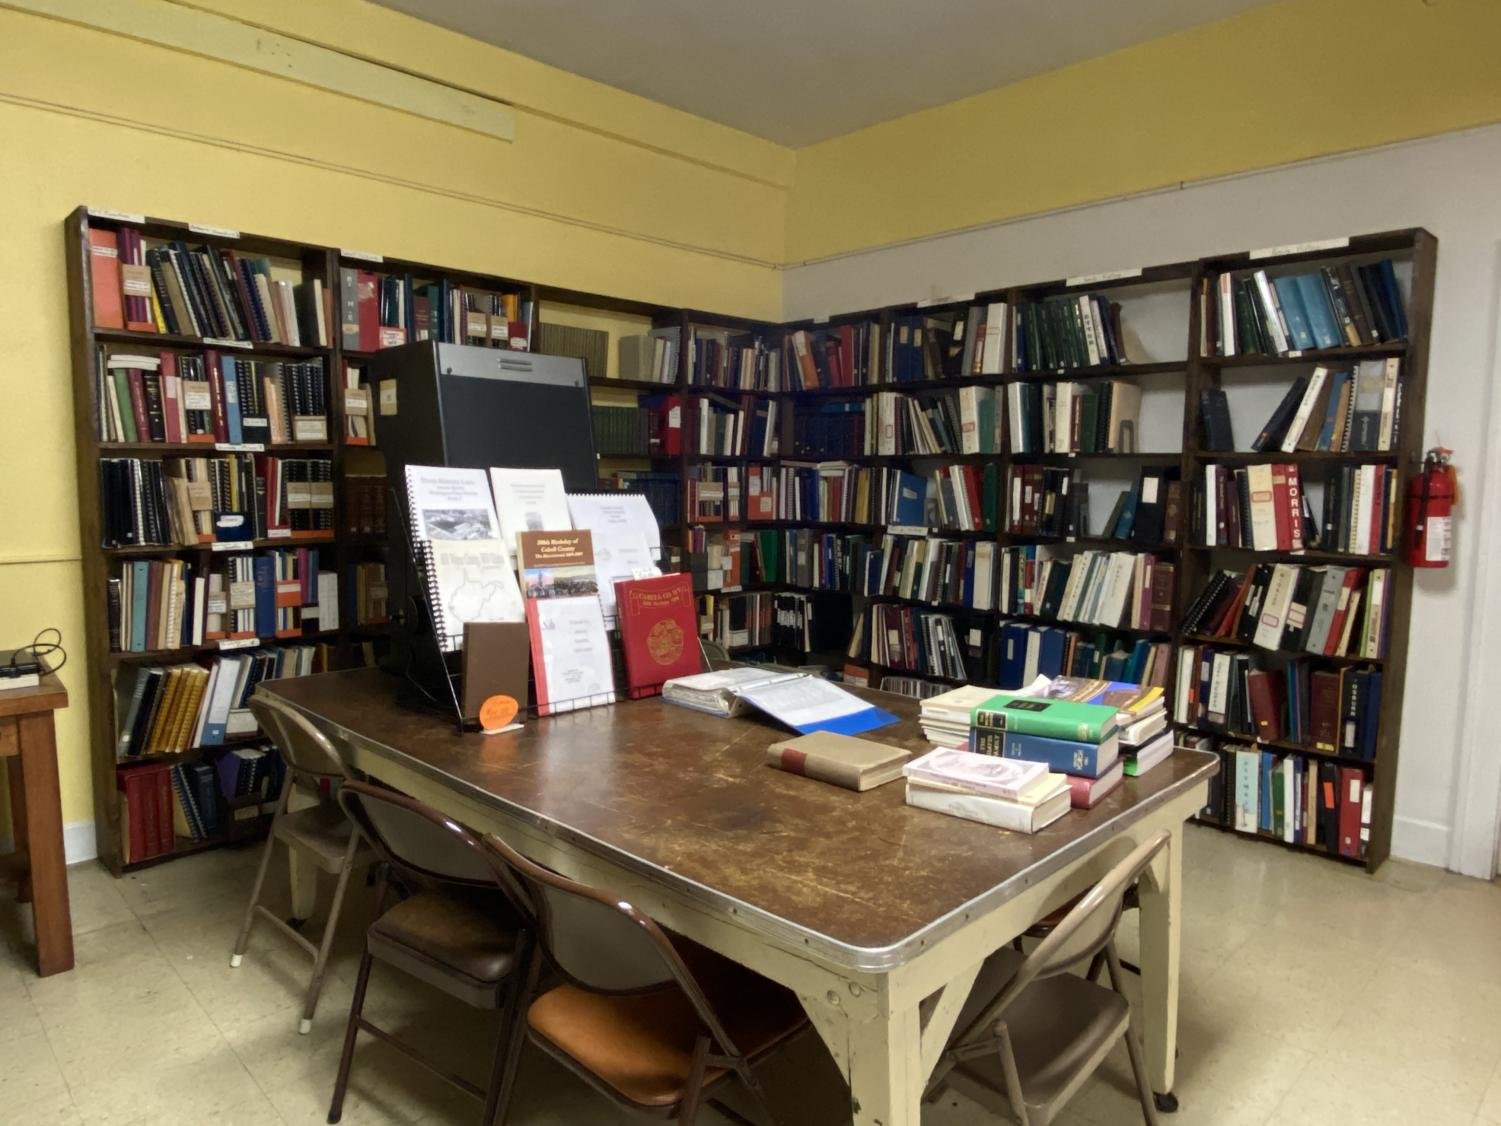 KYOWVA library includes alphabetized family histories, as well as histories from Cabell, Lincoln, Logan, Kanawha and Wayne counties.